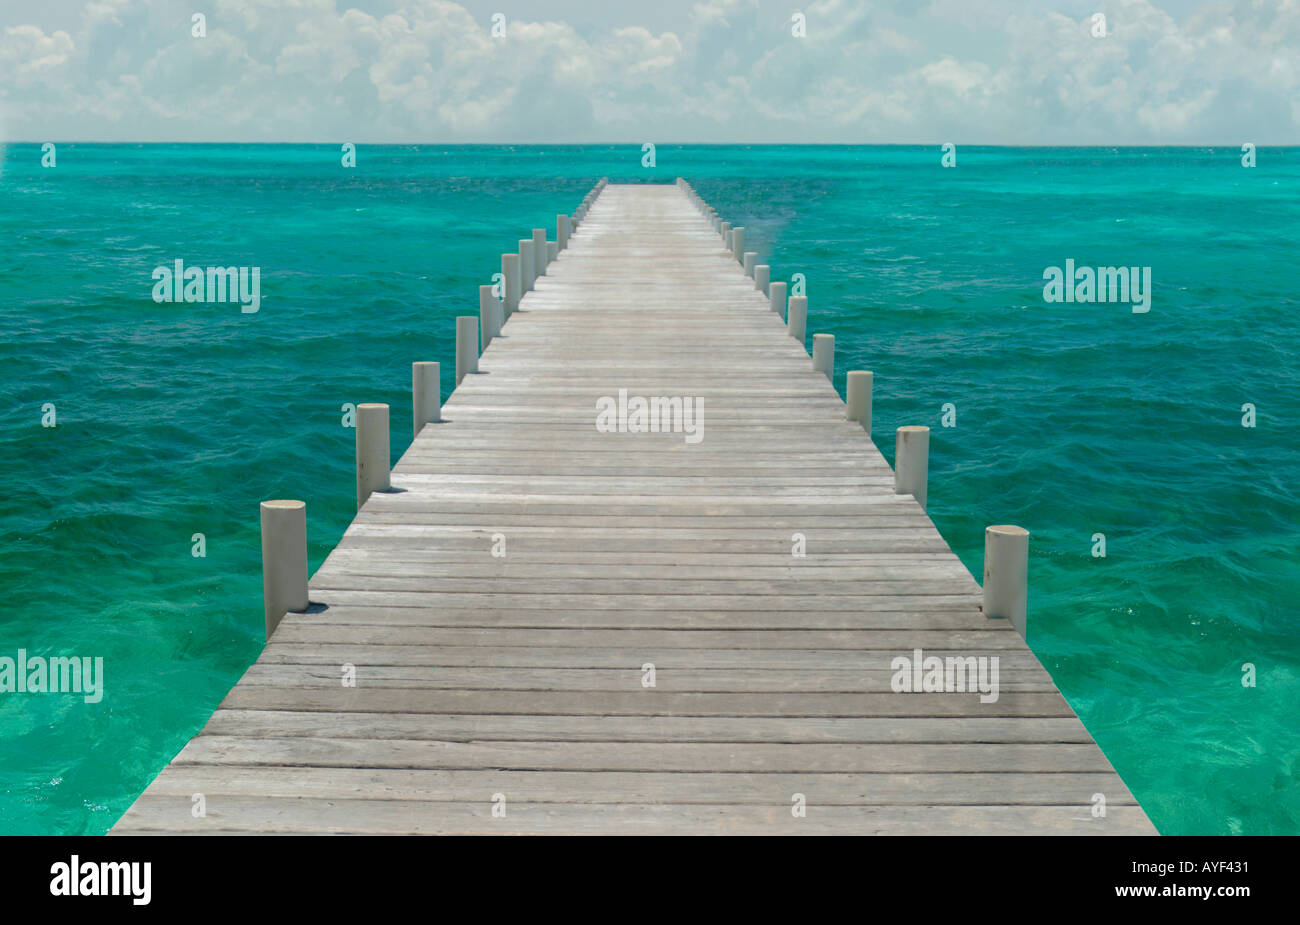 A long wooden pier juts into the Caribbean Sea - Stock Image